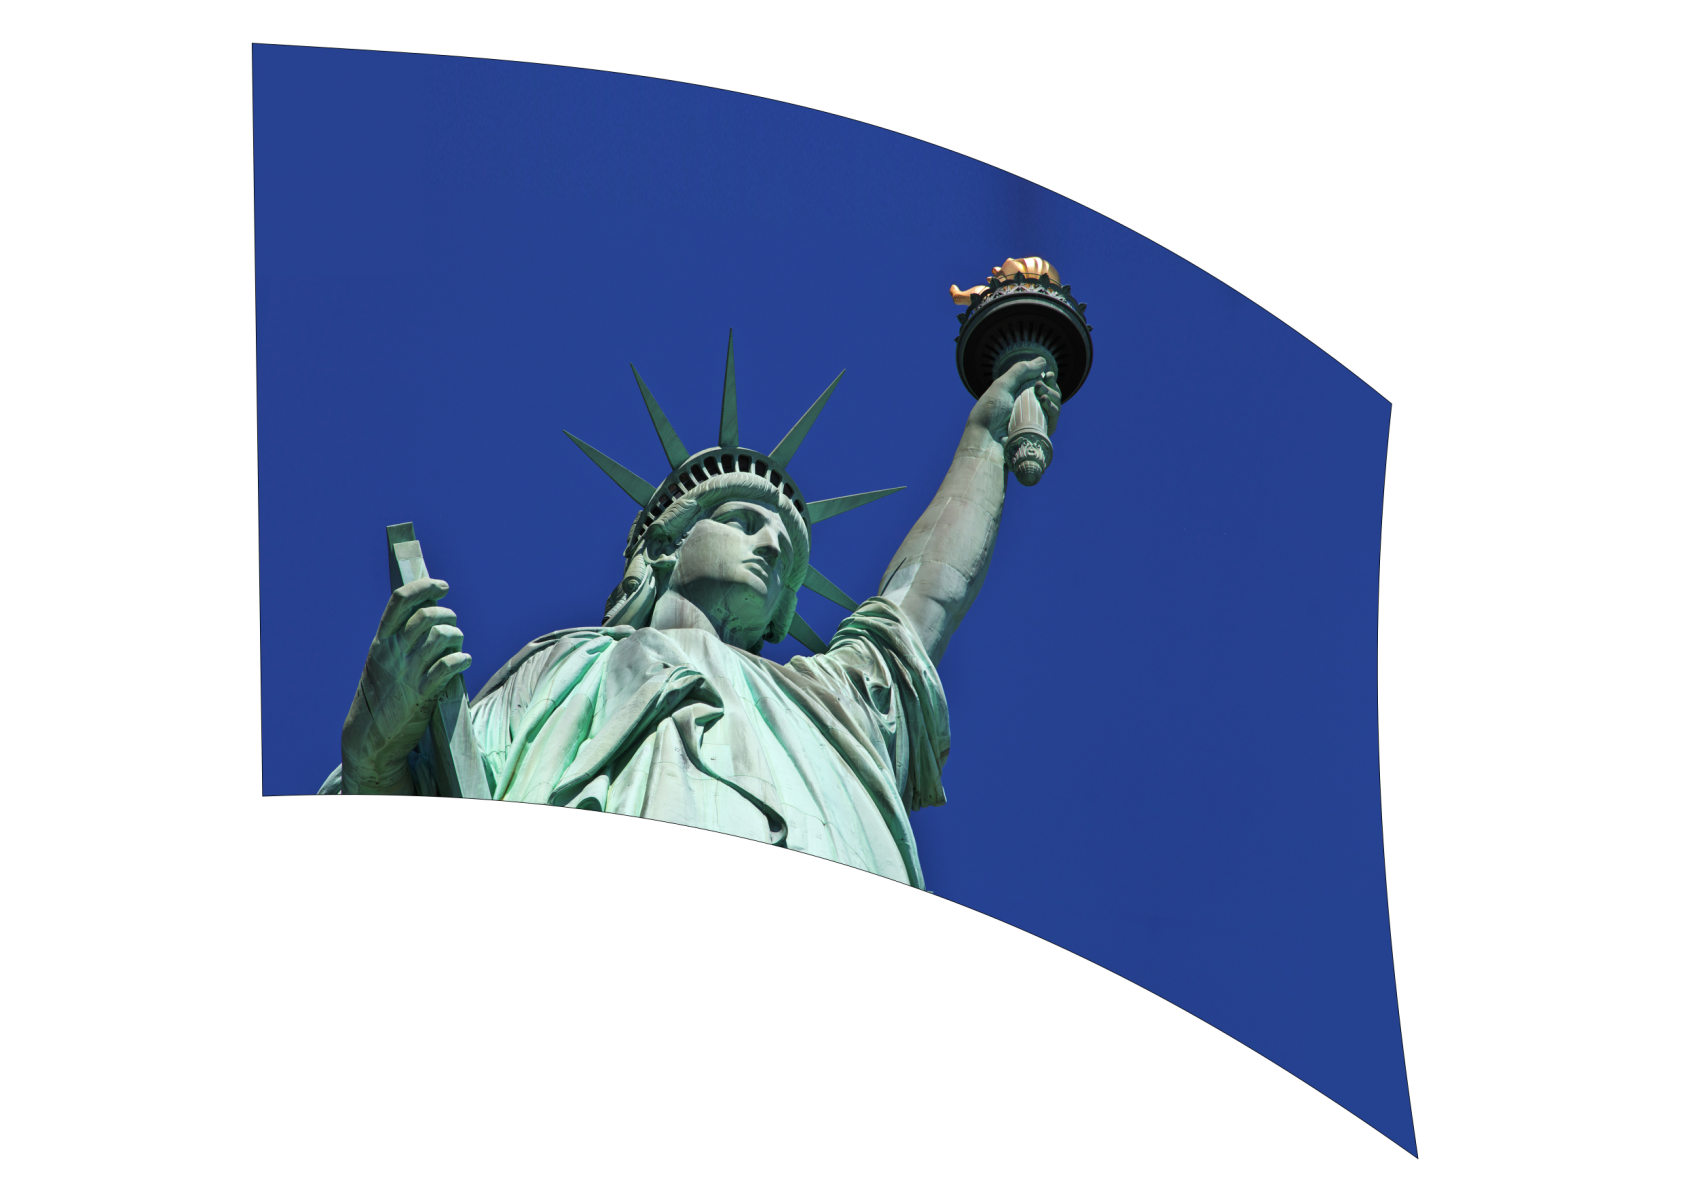 060304s - 36x54 Standard Statue of Liberty 2